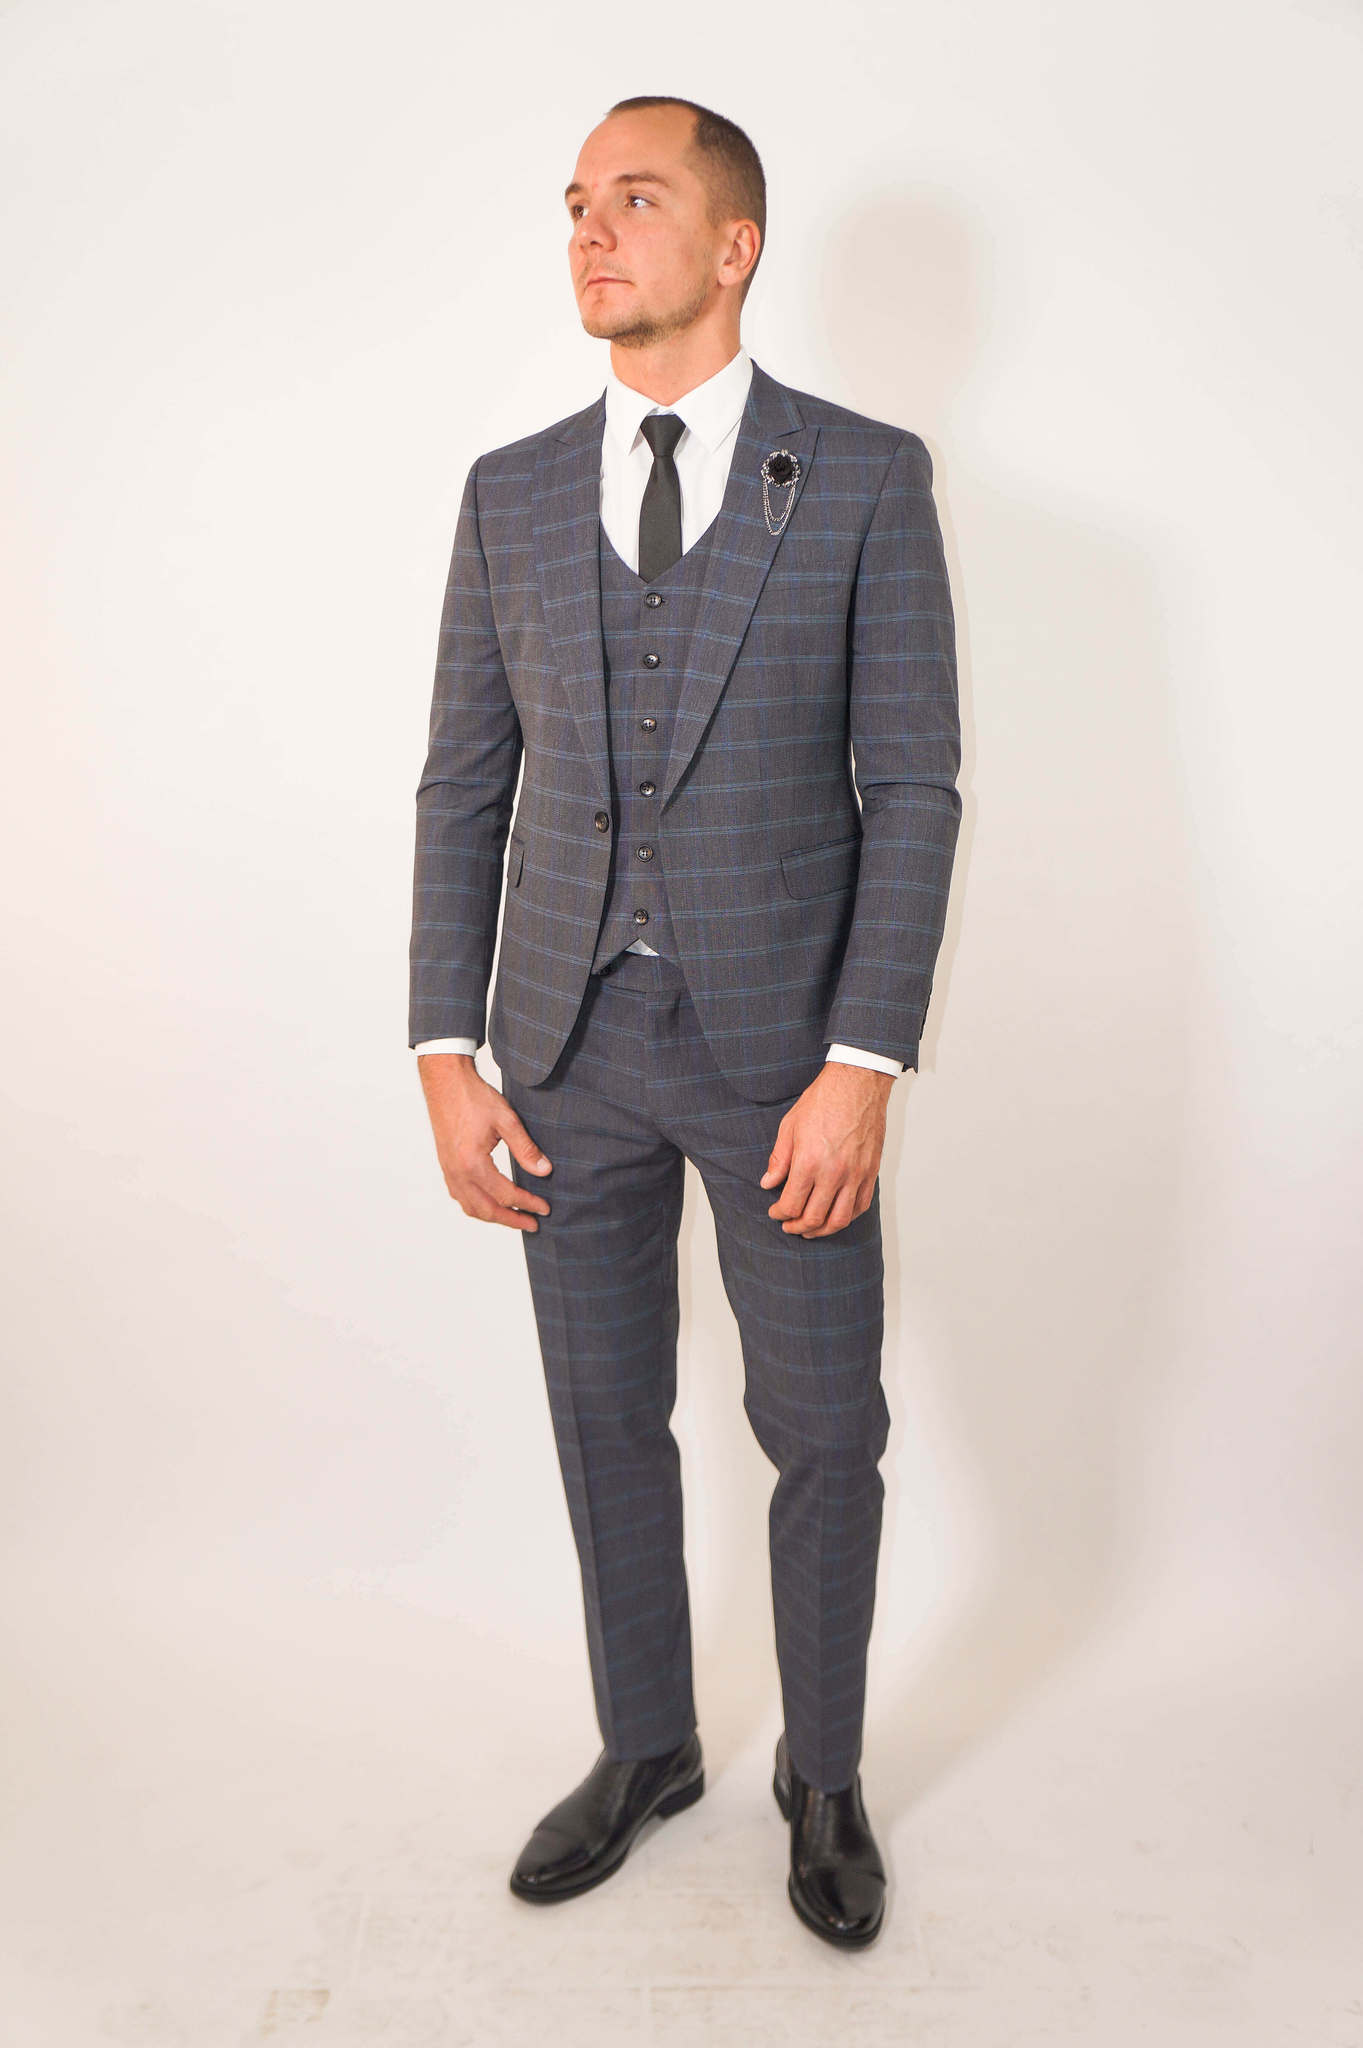 Костюм Slim fit CESARI MARIANO / Костюм - тройка slim fit DSC01930.jpg